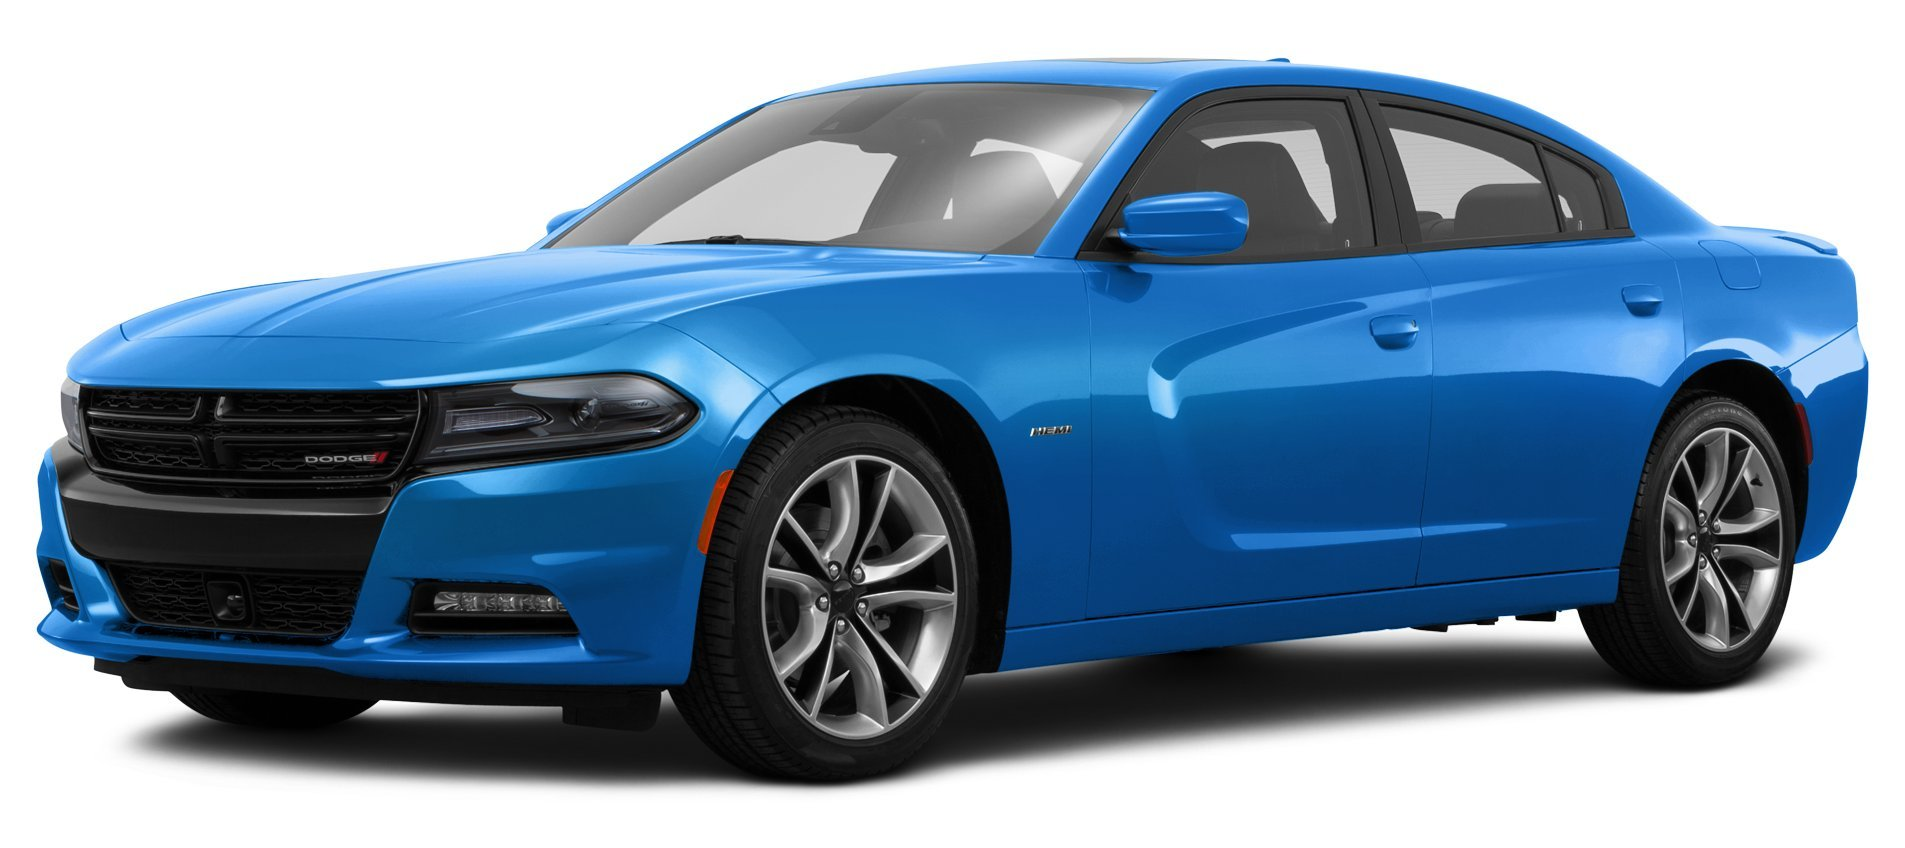 Amazon.com: 2015 BMW 428i Gran Coupe Reviews, Images, and ...2015 Dodge Charger Coupe